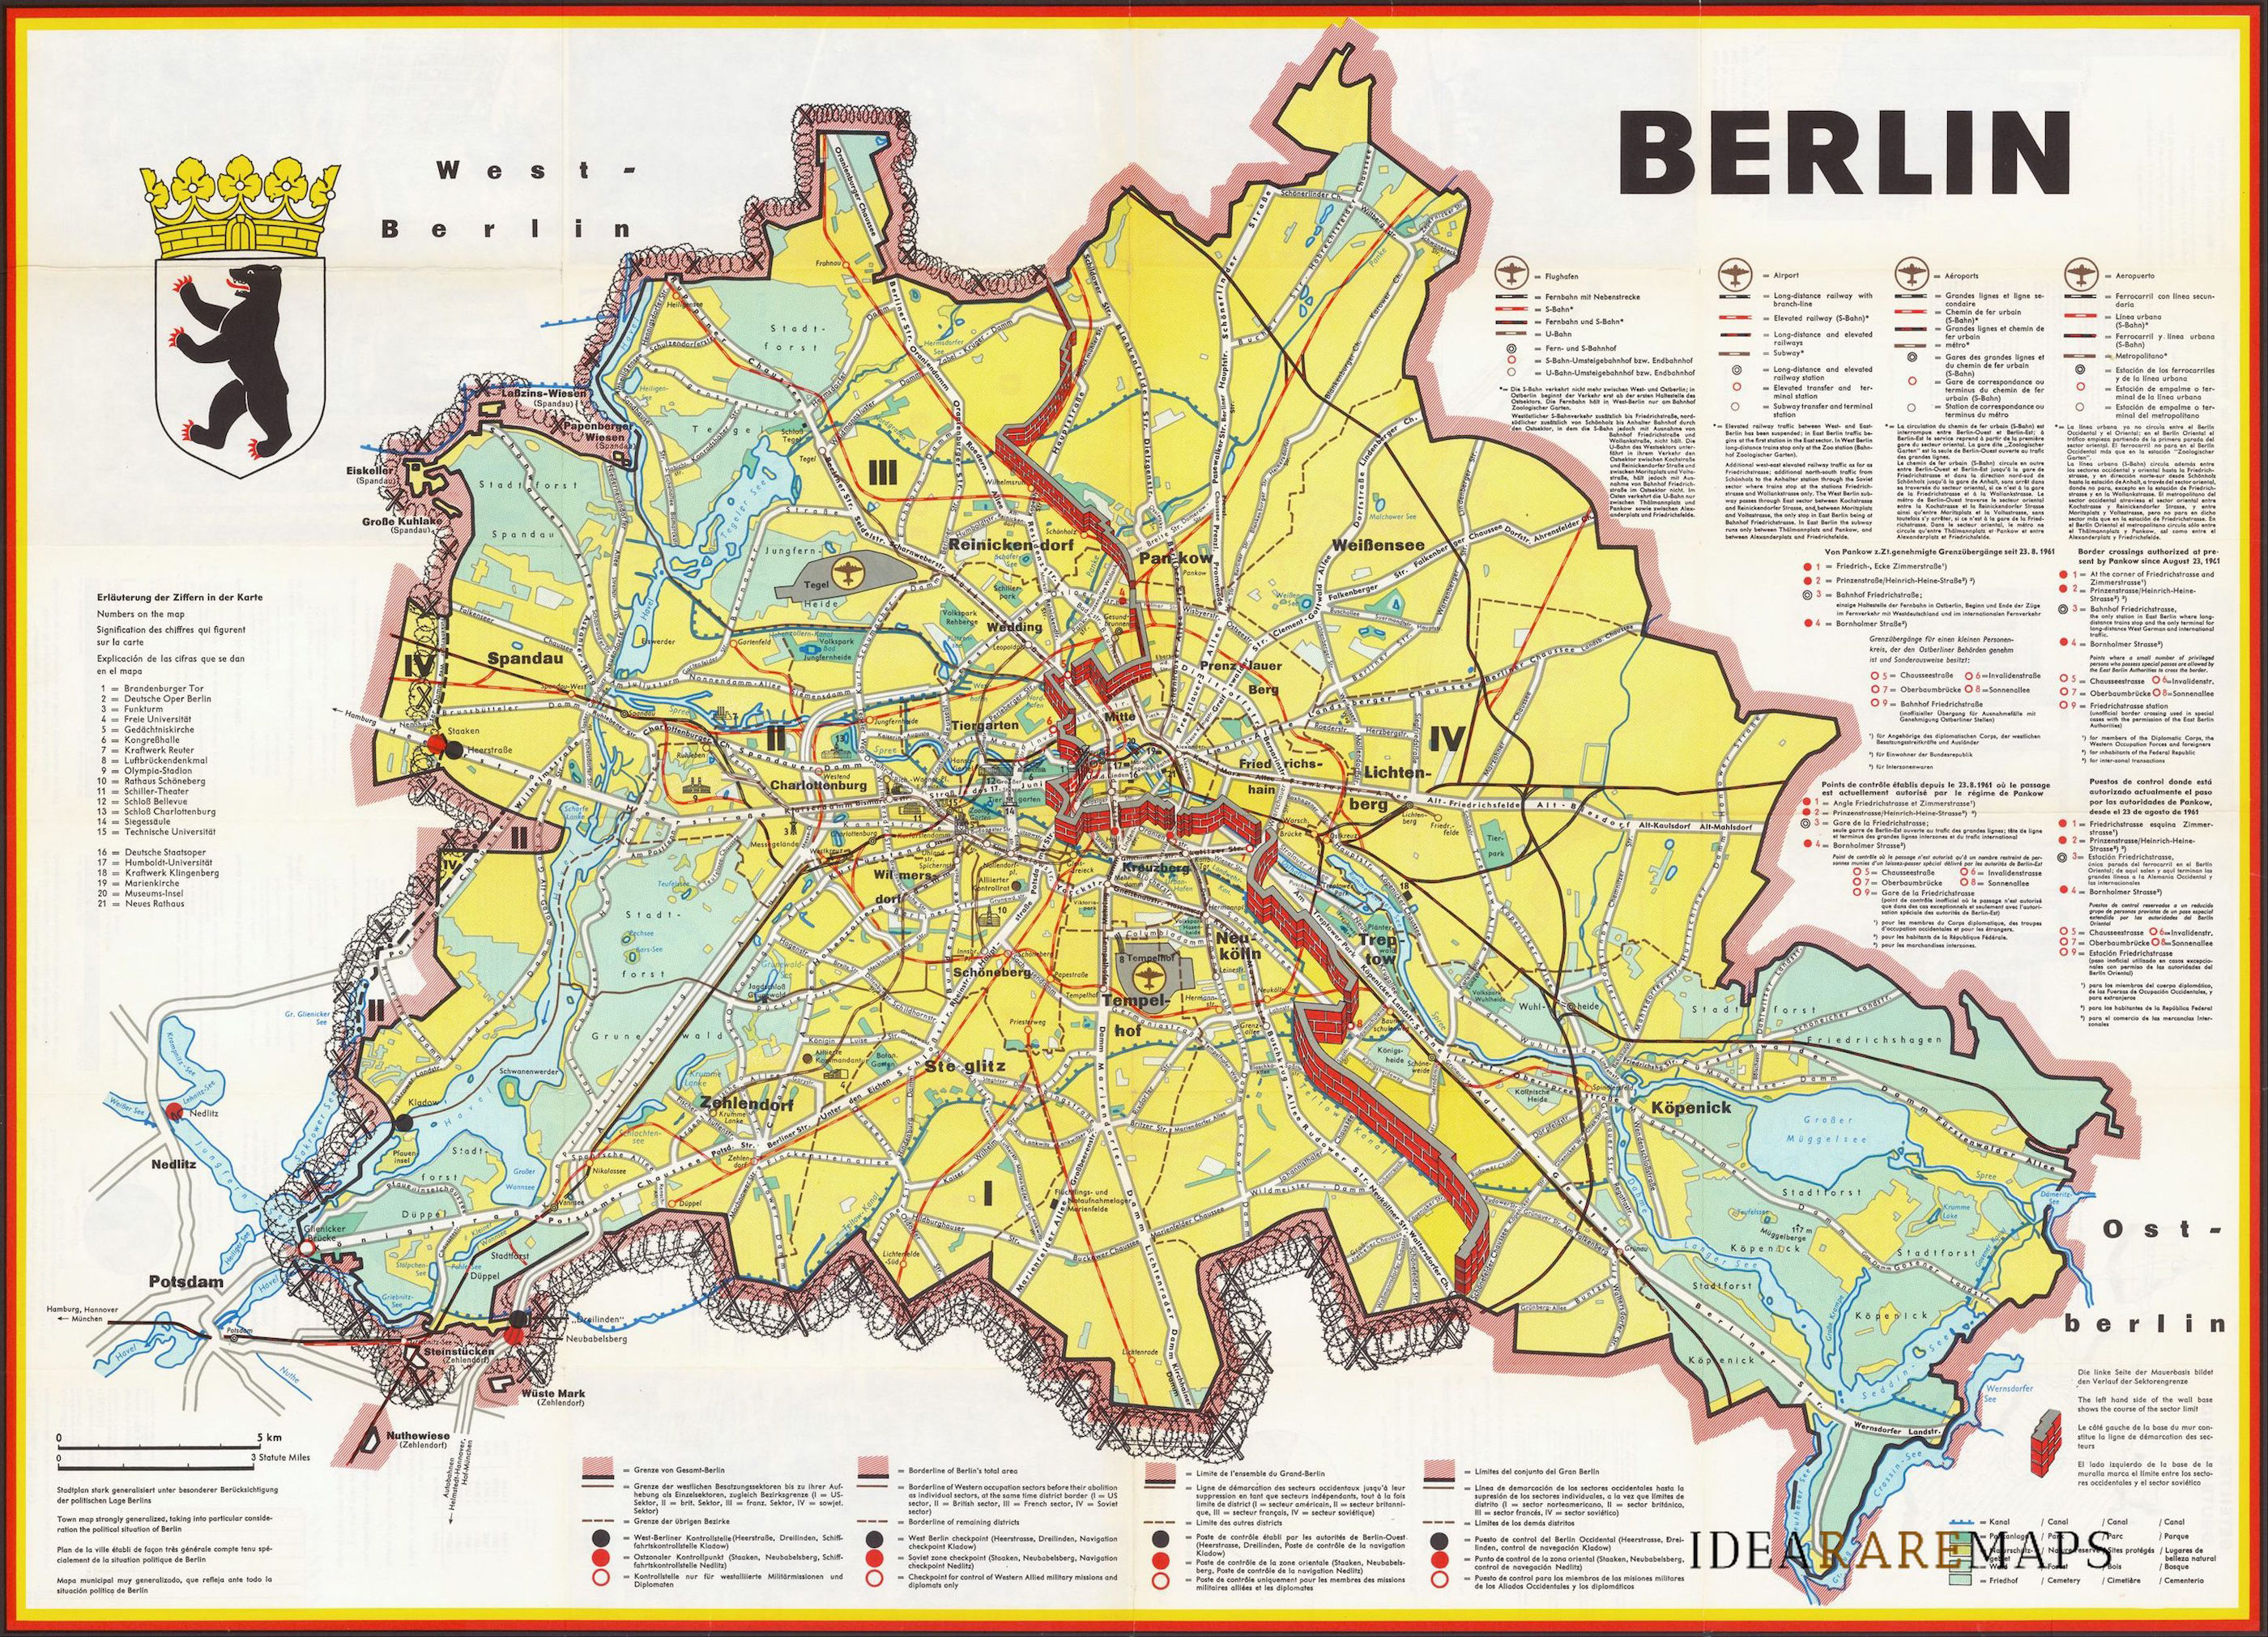 The Berlin wall in a interesting map published in 1962